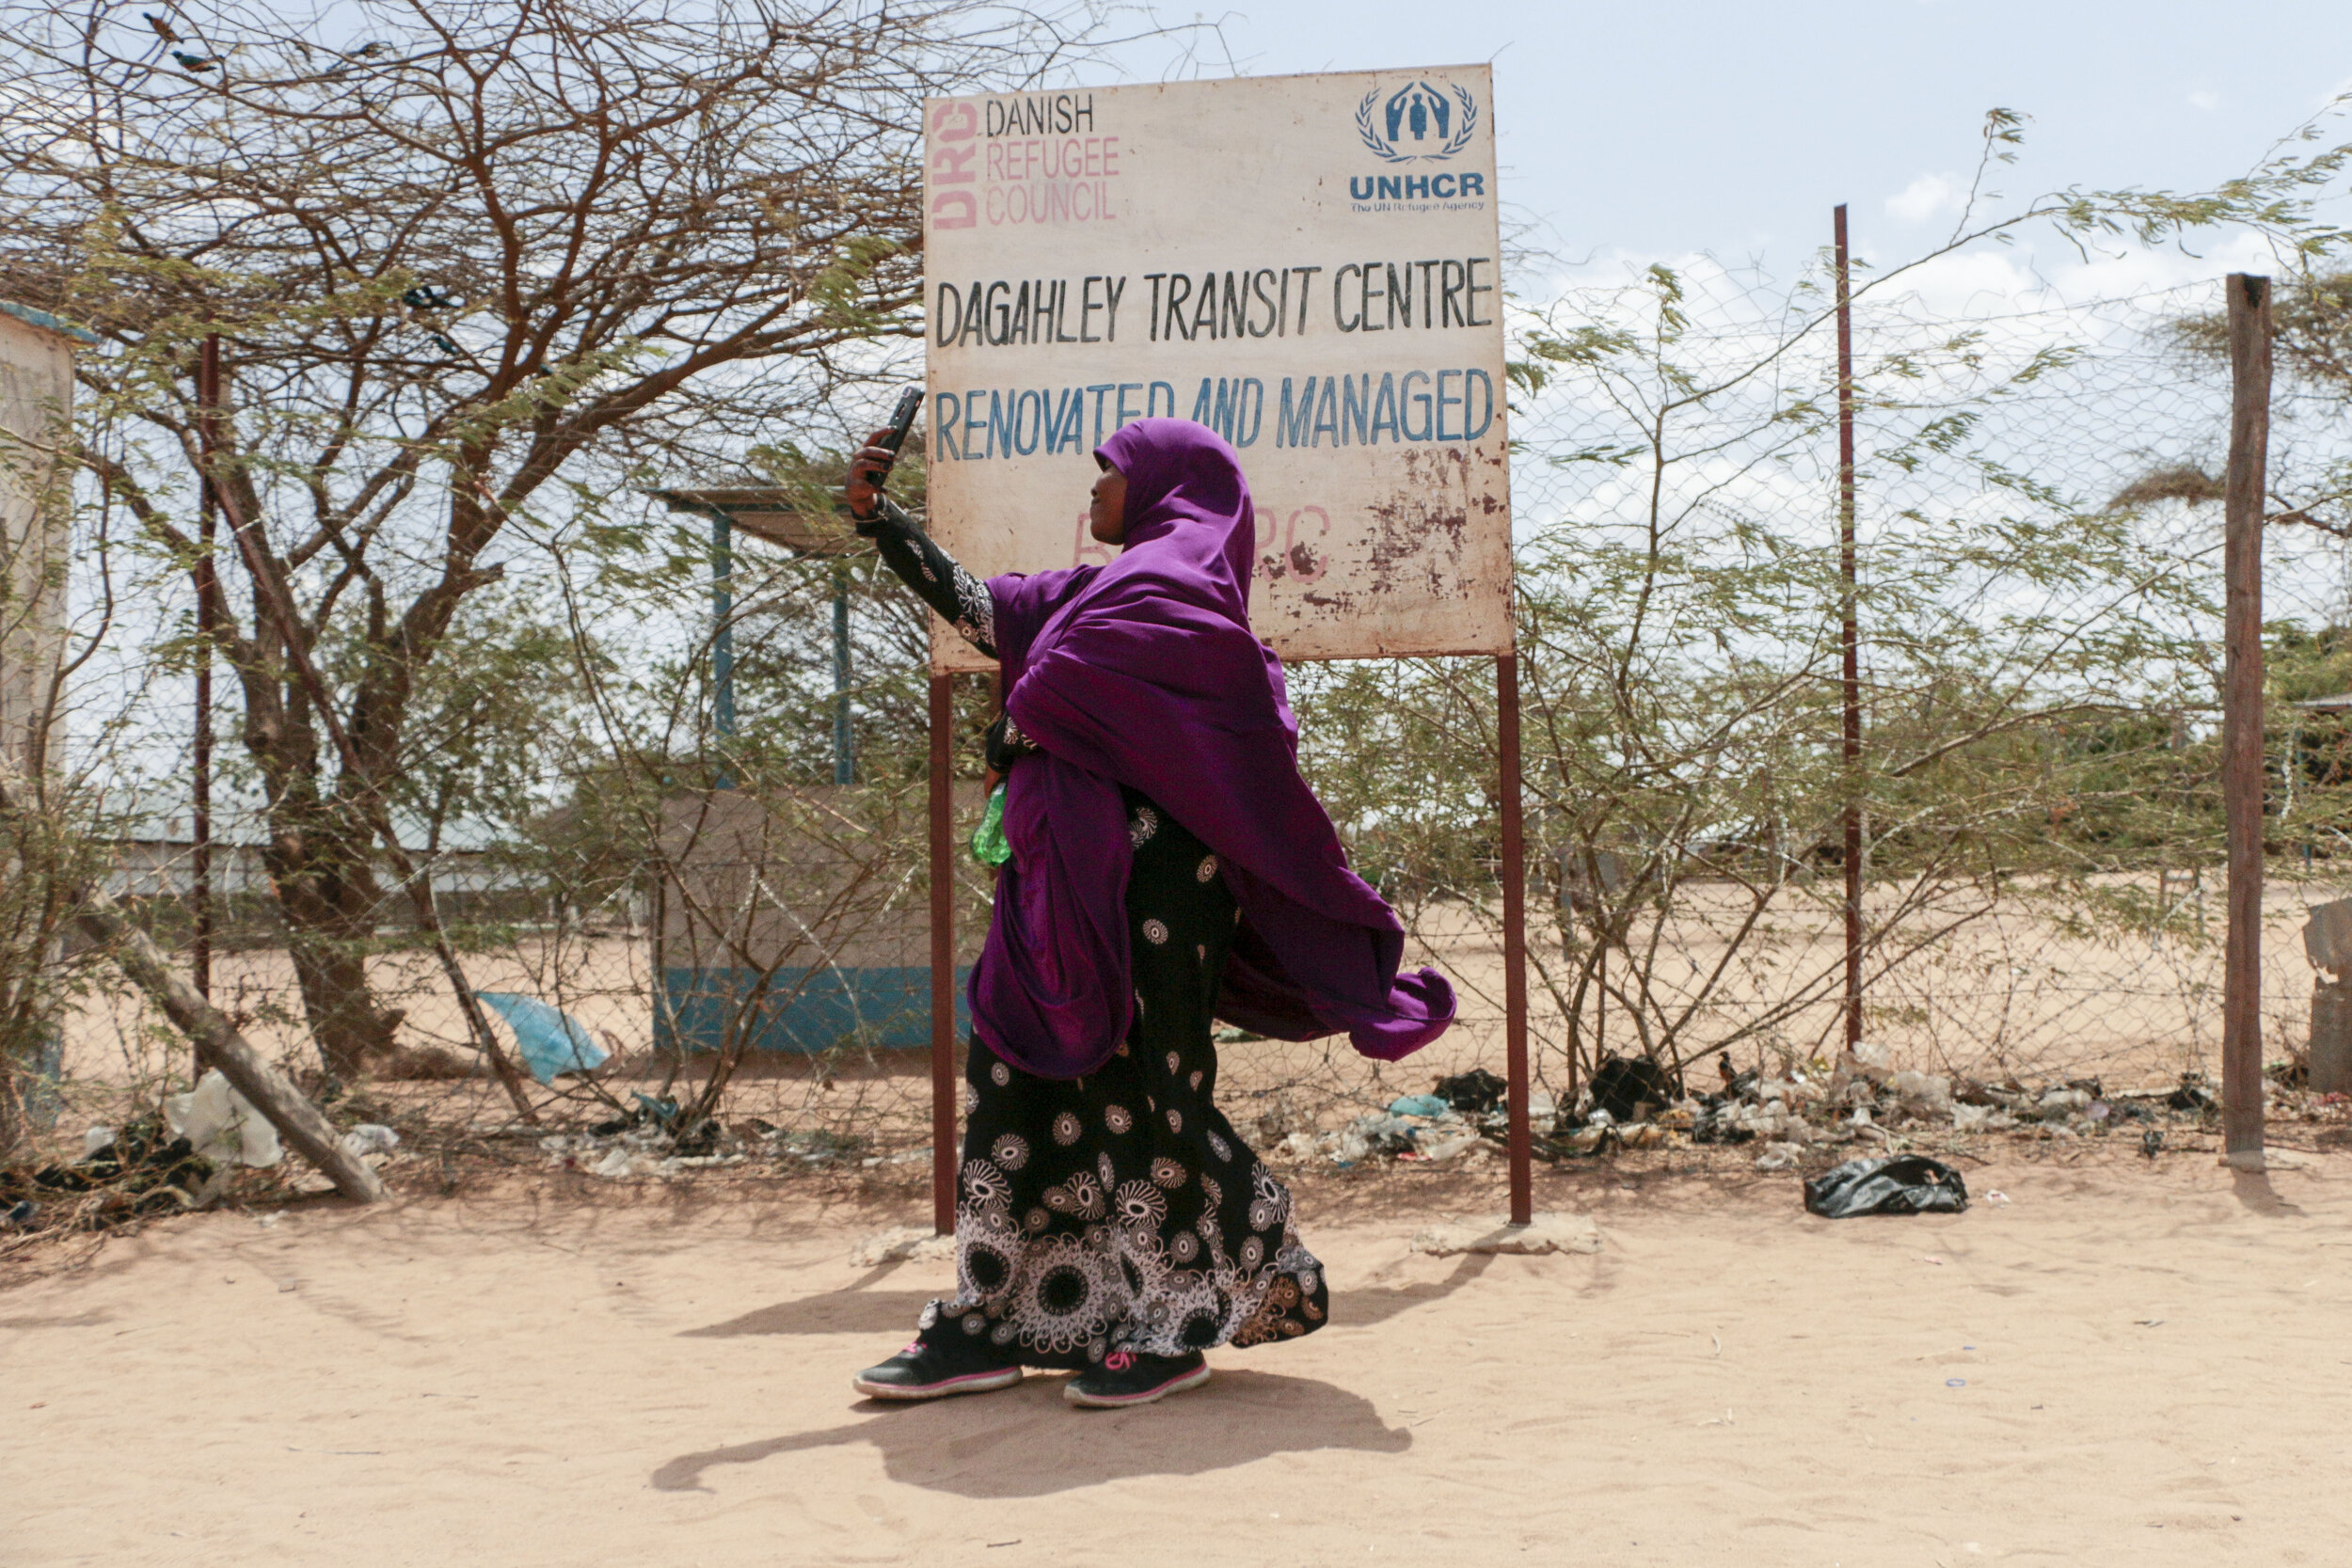 Hamdi Kosar takes a selfie with her phone in front of the Dagahaley Transit Centre sign Aug. 19 at the Dagahaley Refugee Camp in Dadaab, Kenya. Kosar, 21, was born at the refugee camp and lived there throughout most of her pre-teen years. This is the first time she has been back to the camp in almost a decade.